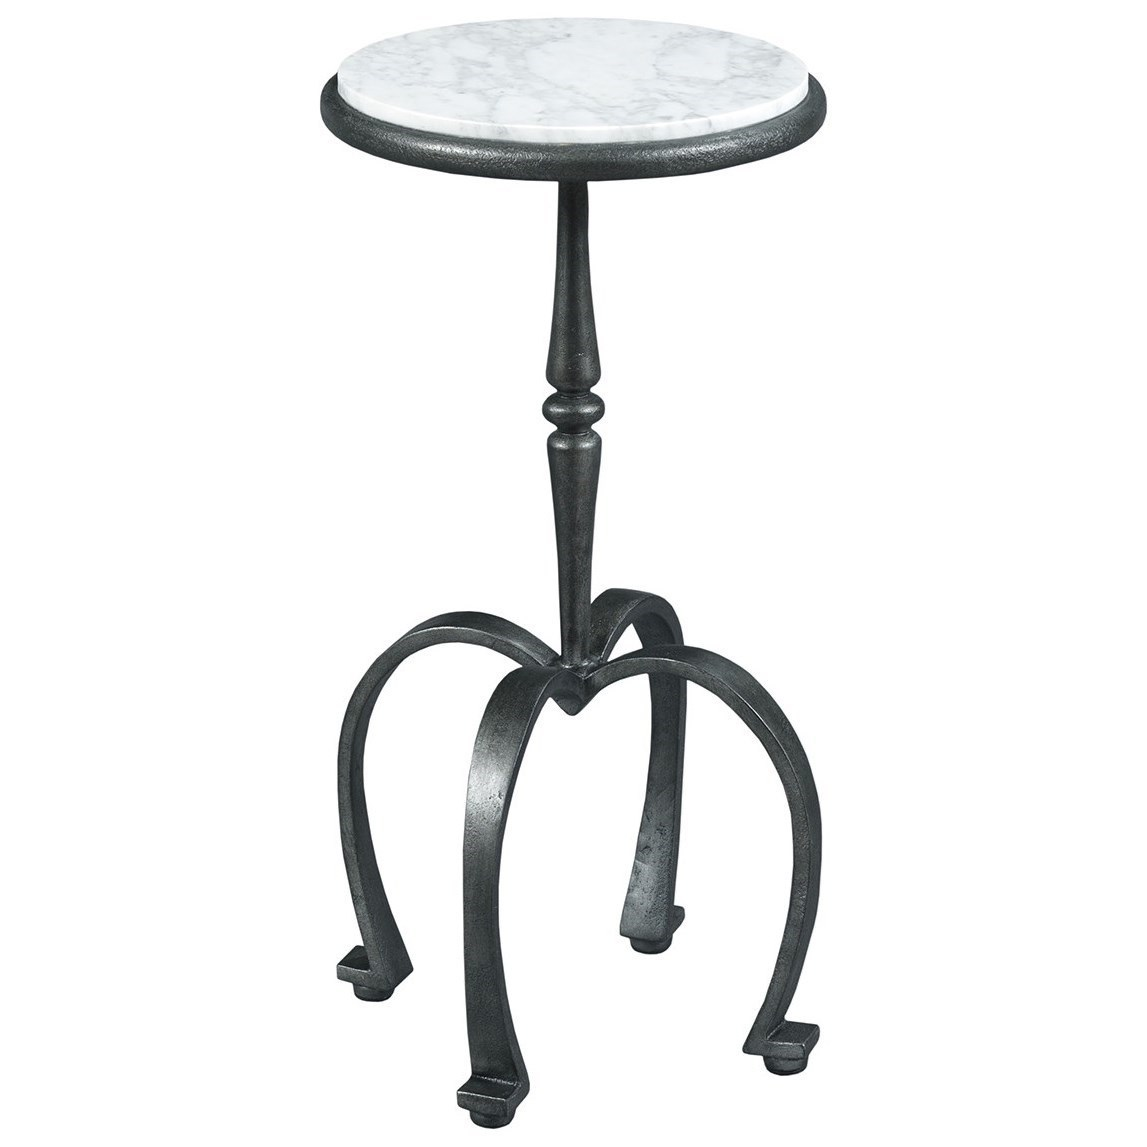 TABLE TRENDS Hidden Treasures Transitional Martini End Table